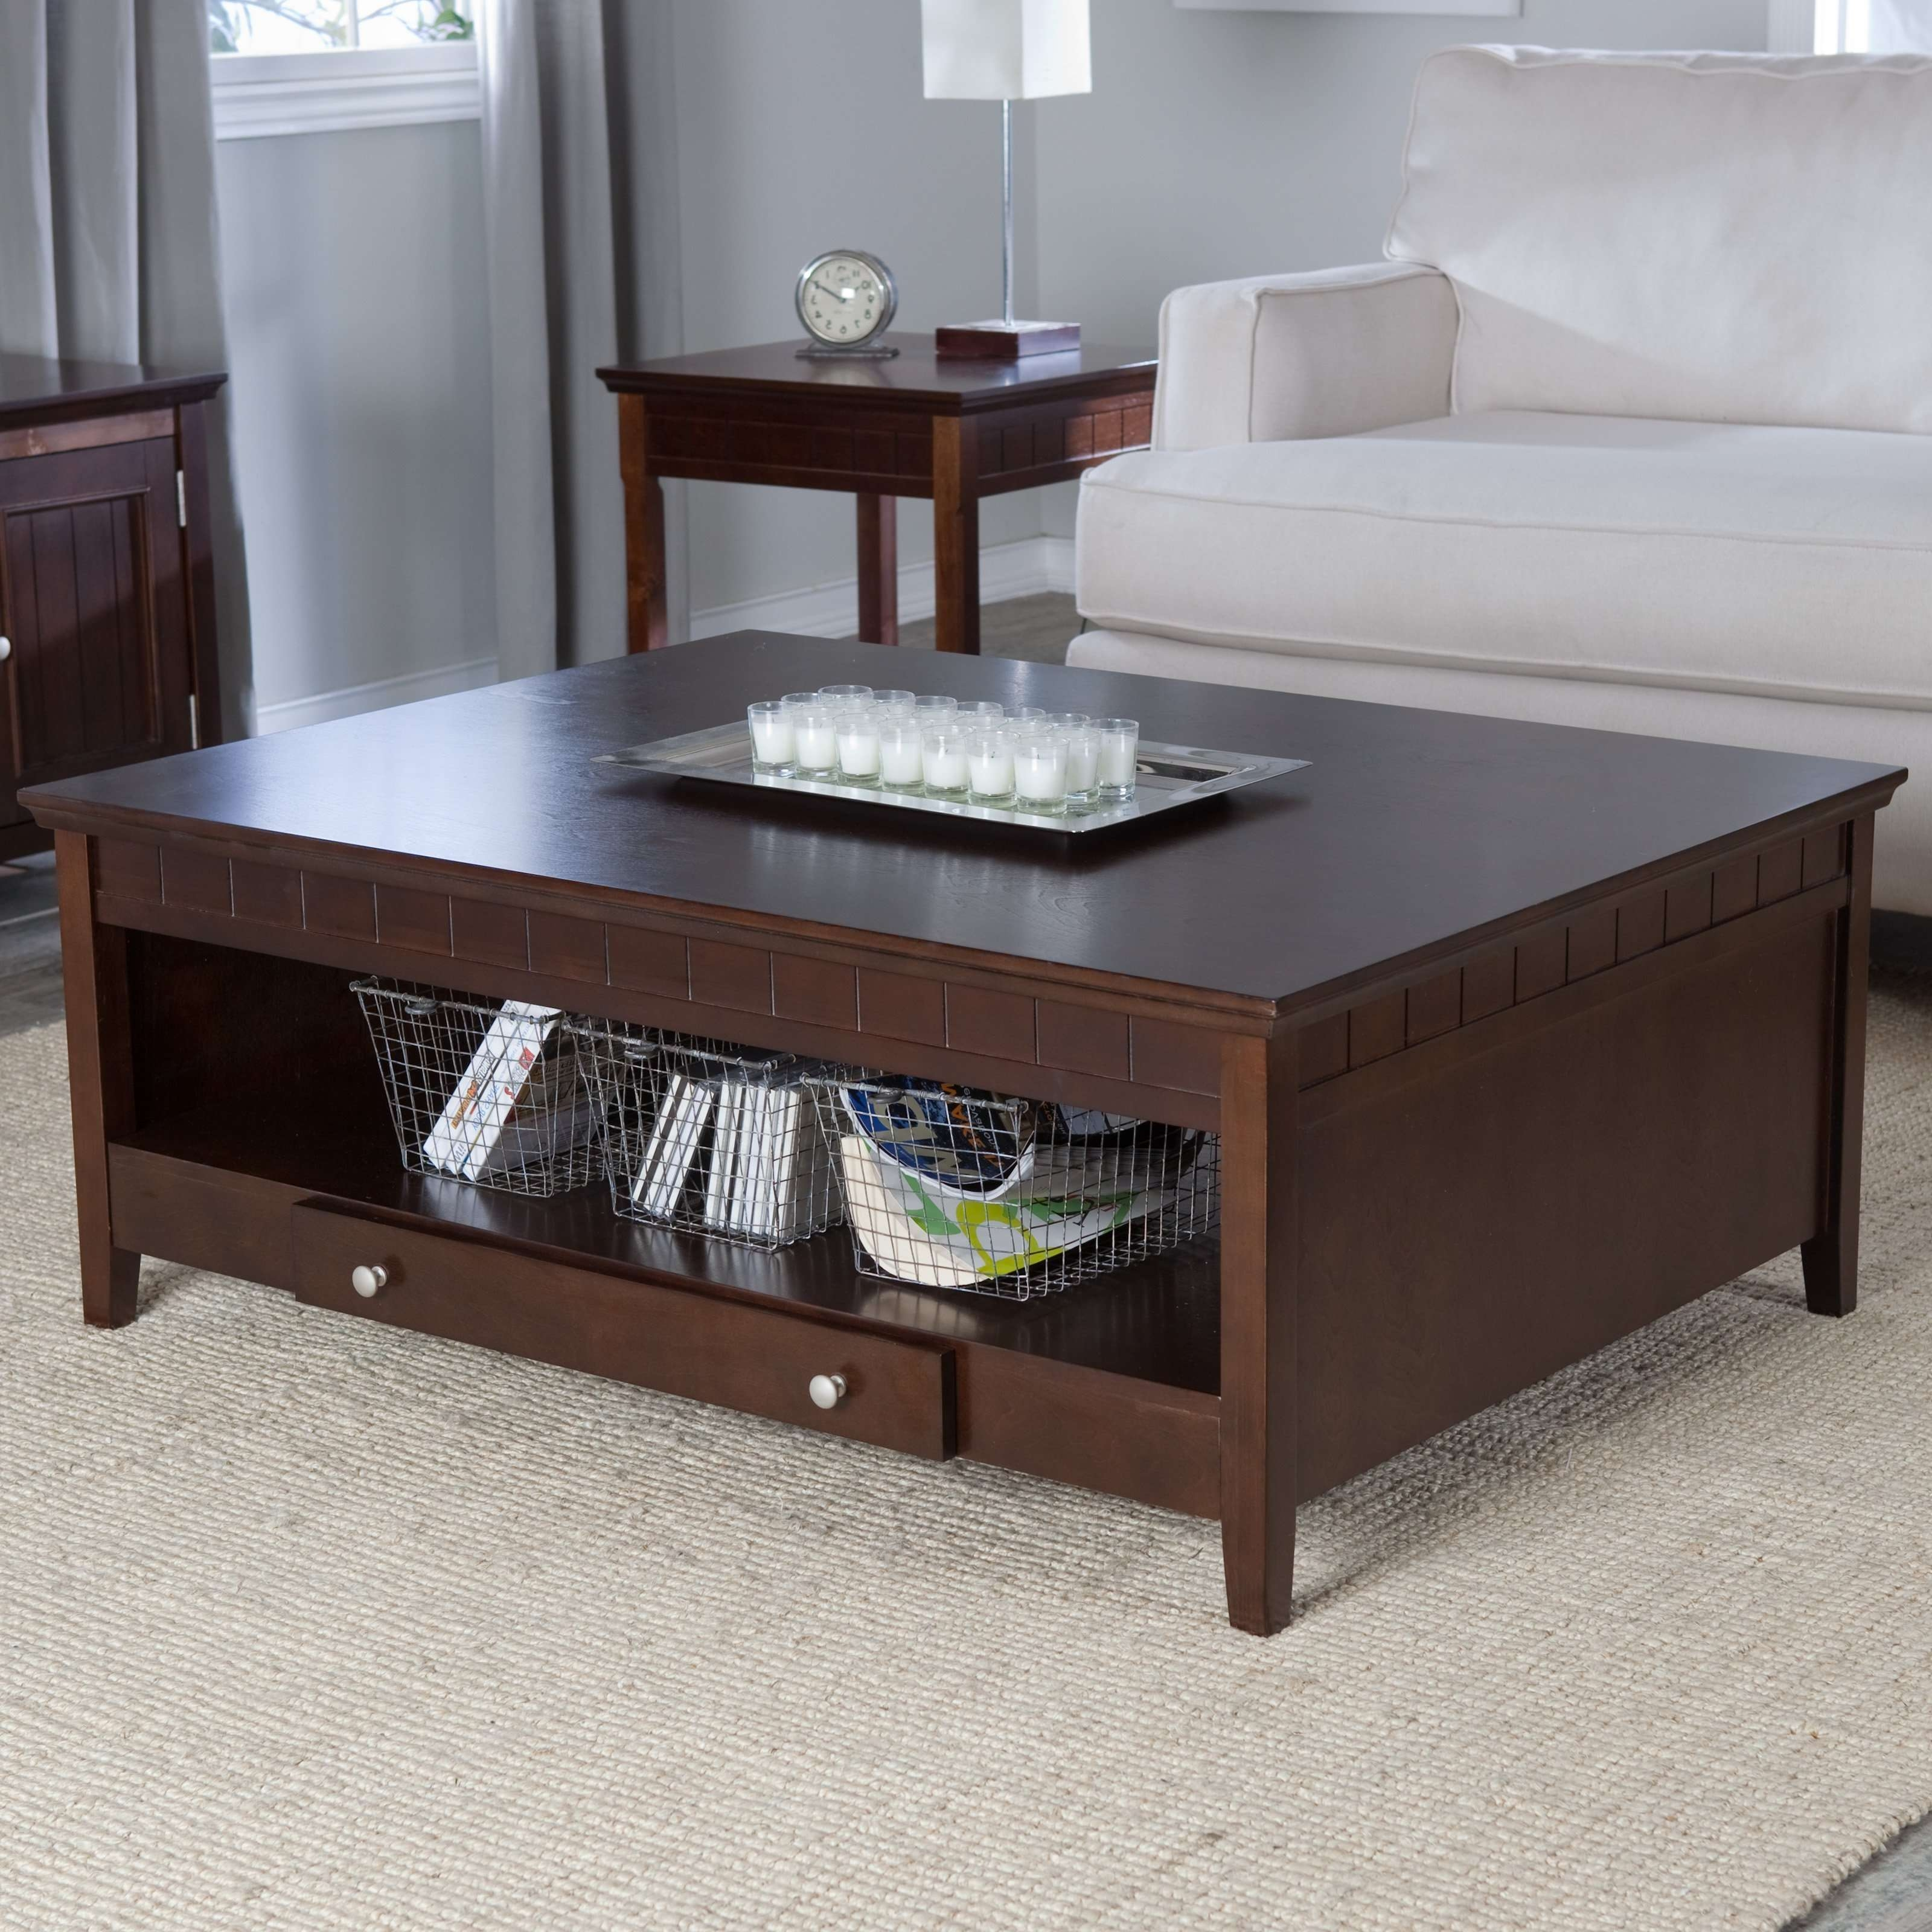 Modern Square Coffee Table With Storage With Modern Espresso Throughout Fashionable Square Coffee Tables With Storages (View 11 of 20)